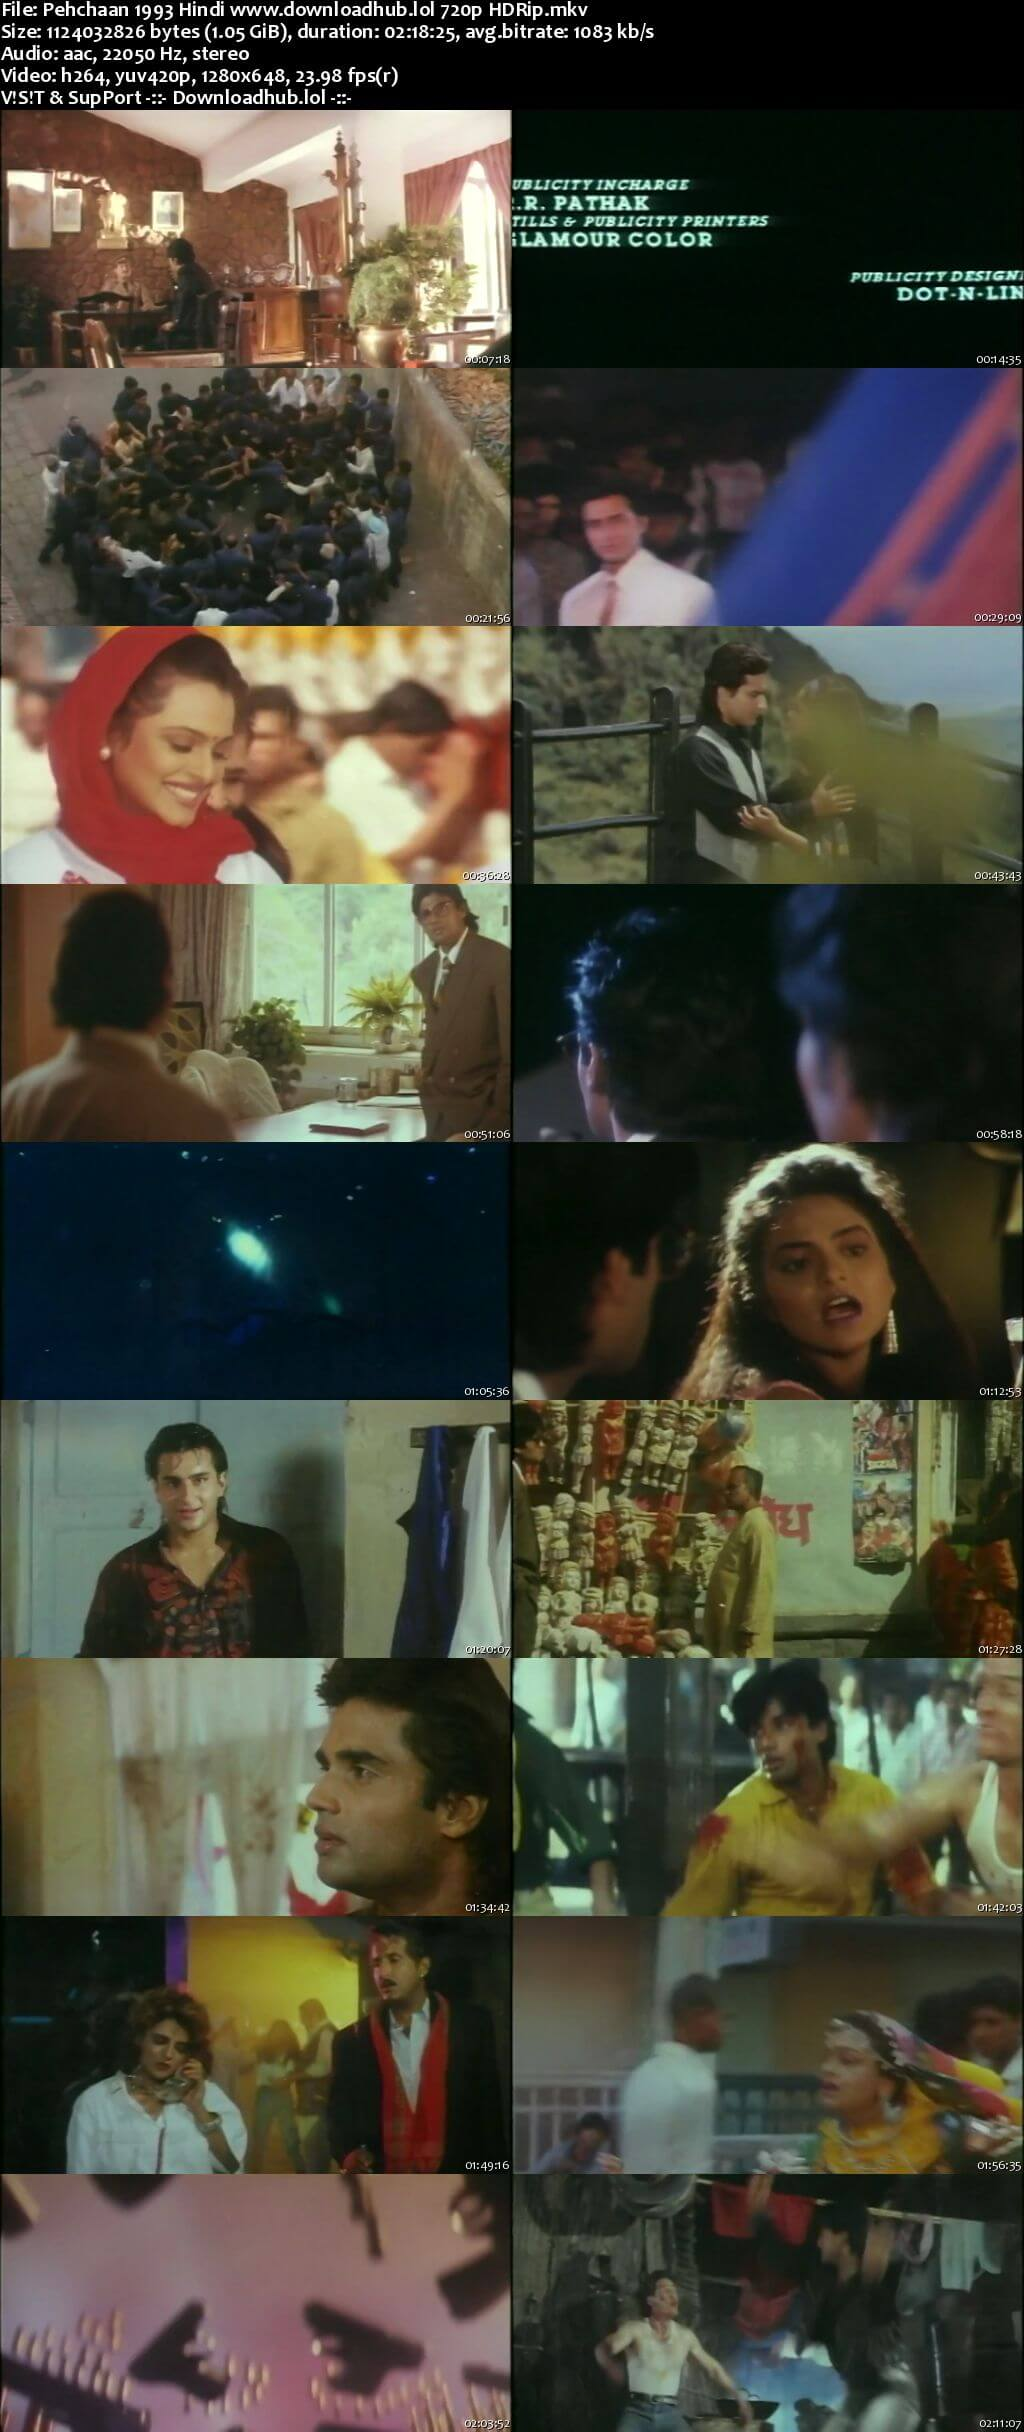 Pehchaan 1993 Hindi 720p HDRip x264